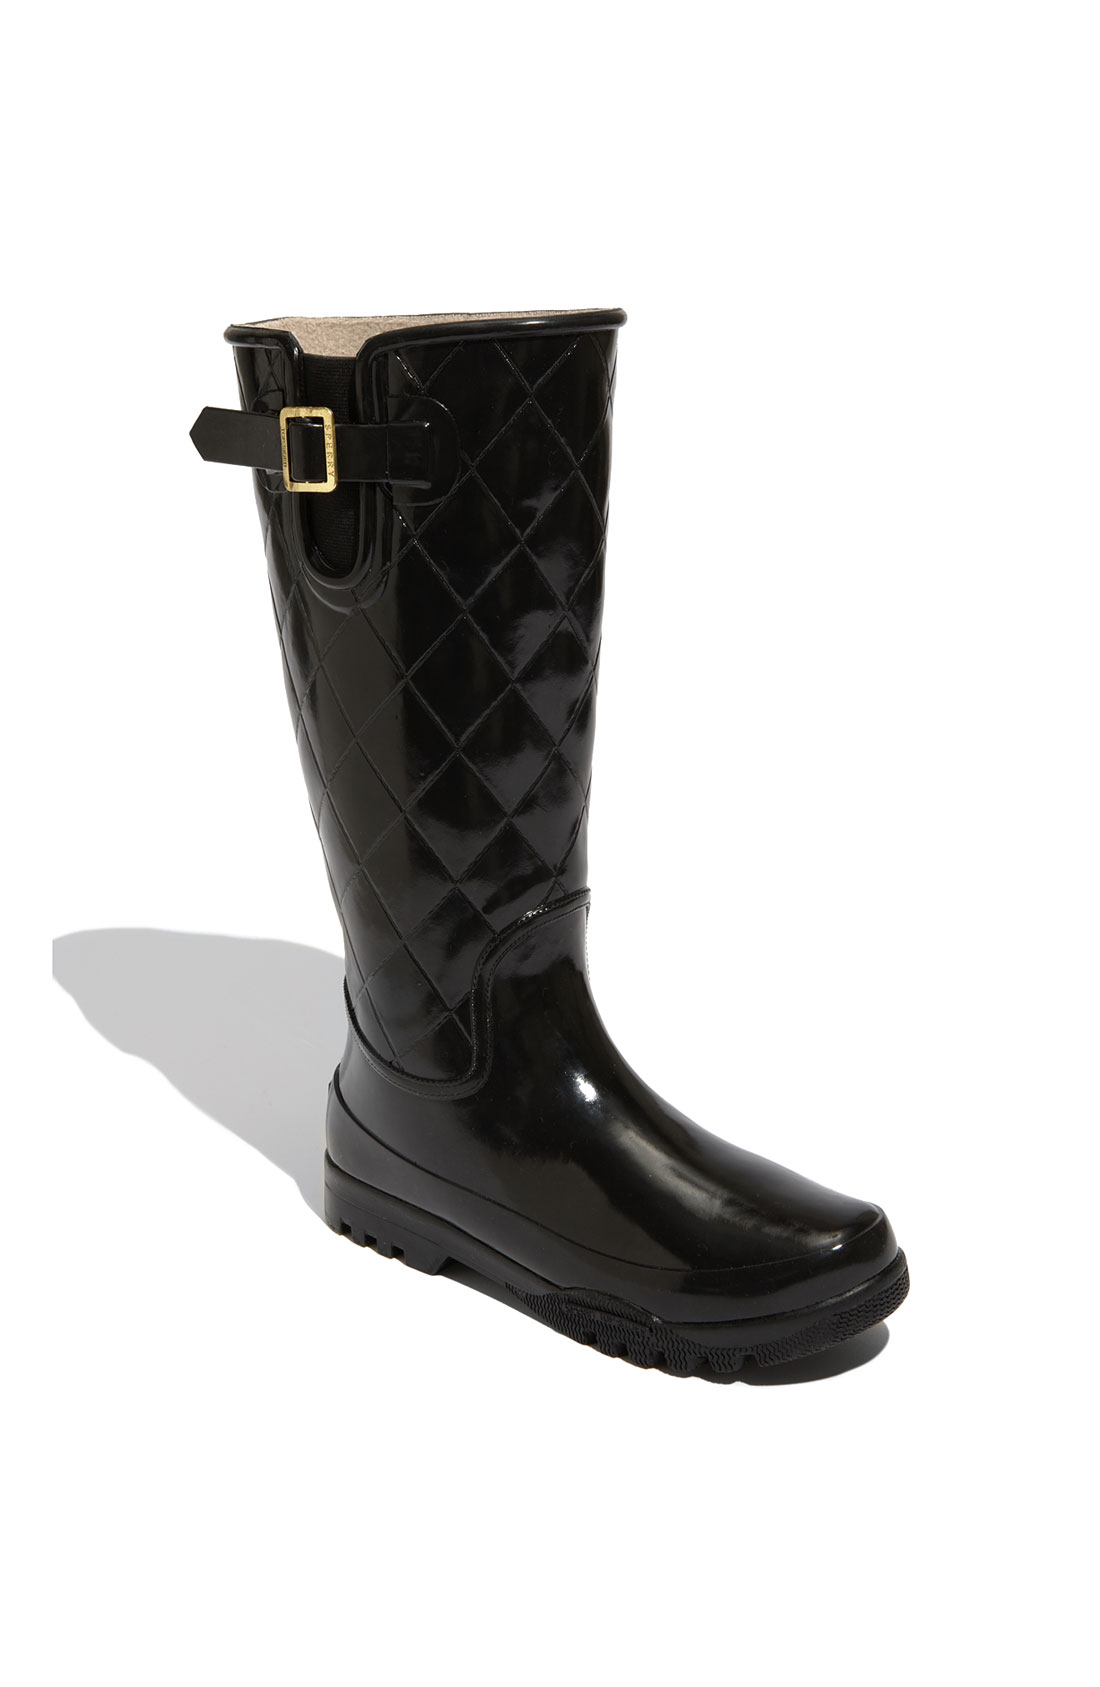 Sperry Top Sider Pelican Tall Rain Boot In Black Black